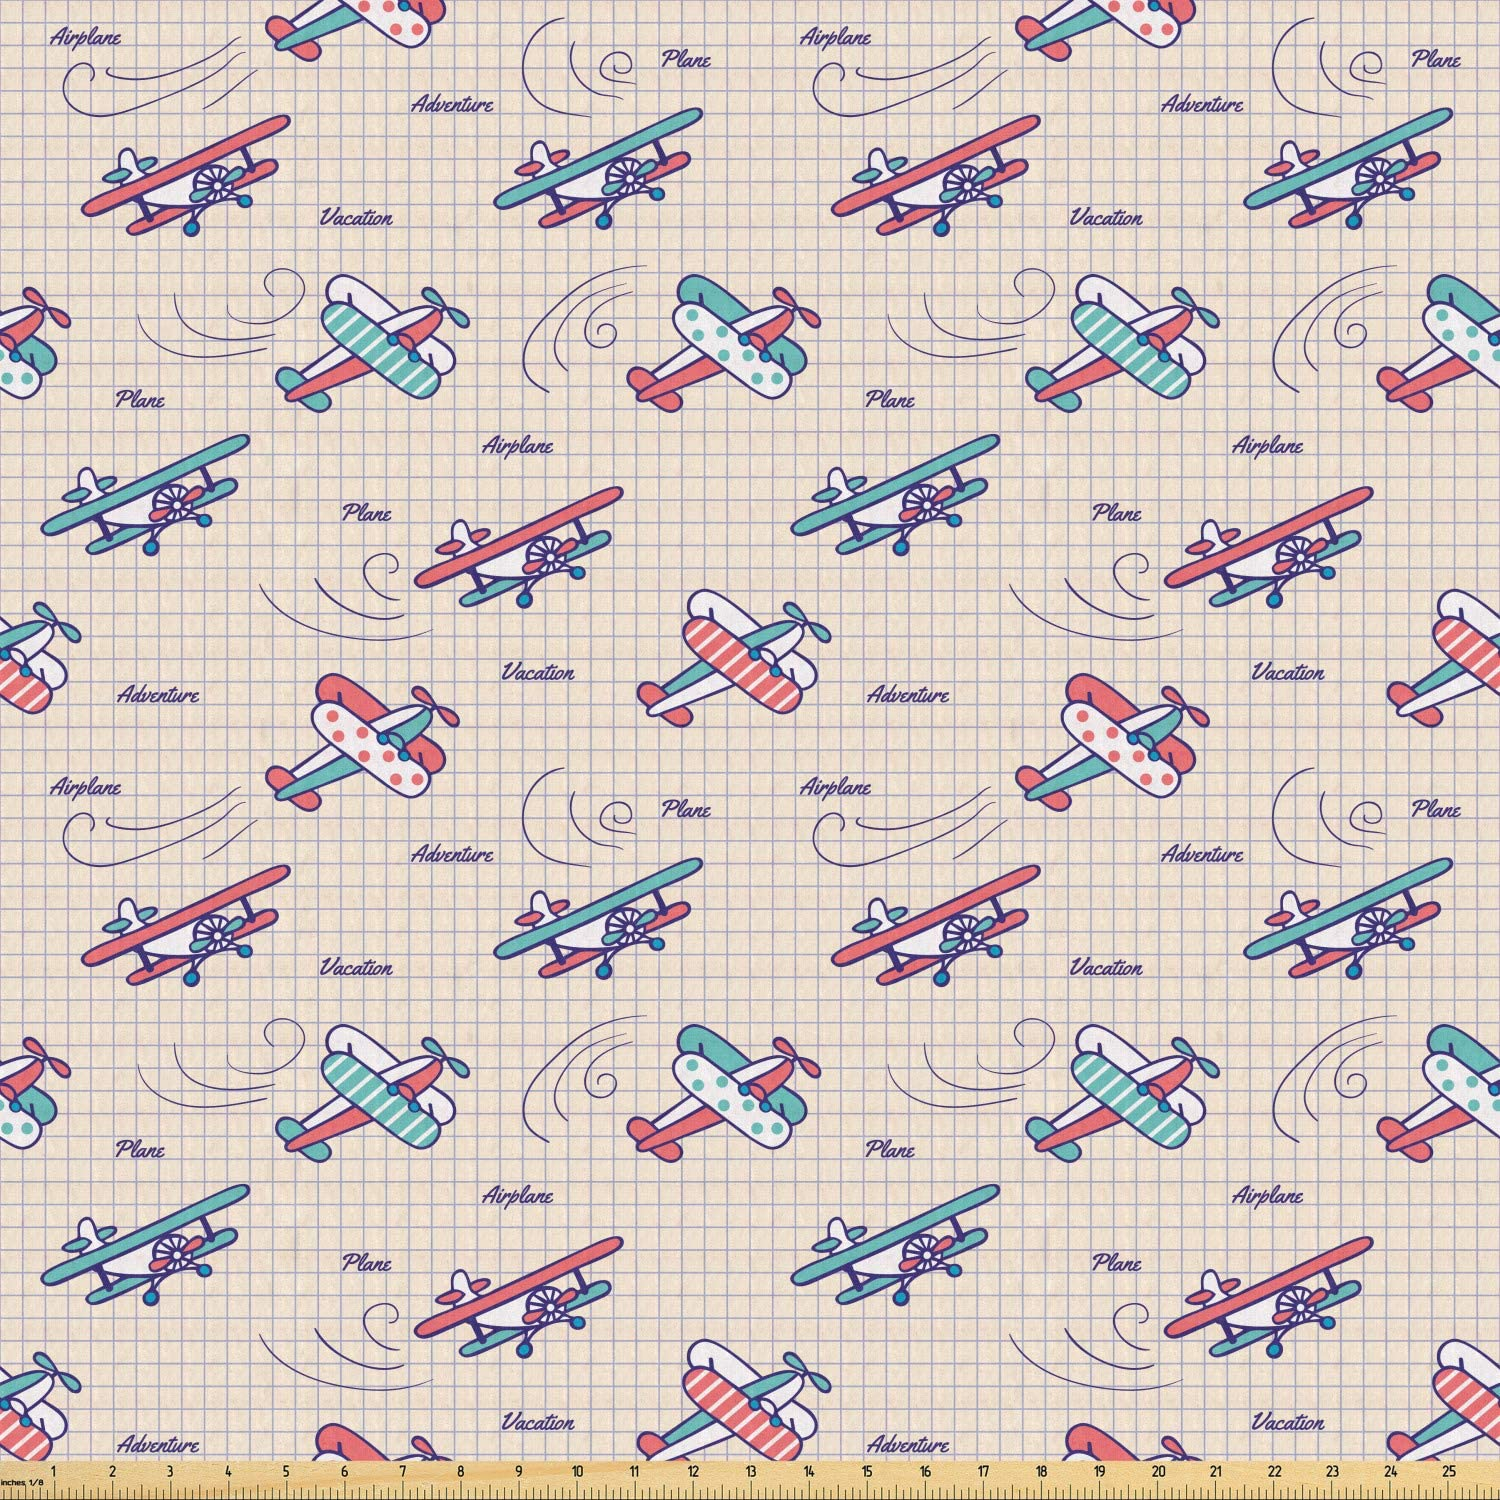 Ambesonne Vintage Airplane Fabric by The Yard, Colorful Aircrafts on Notebook Background Adventure Exploration Theme, Stretch Knit Fabric for Clothing Sewing and Arts Crafts, 5 Yards, Multicolor